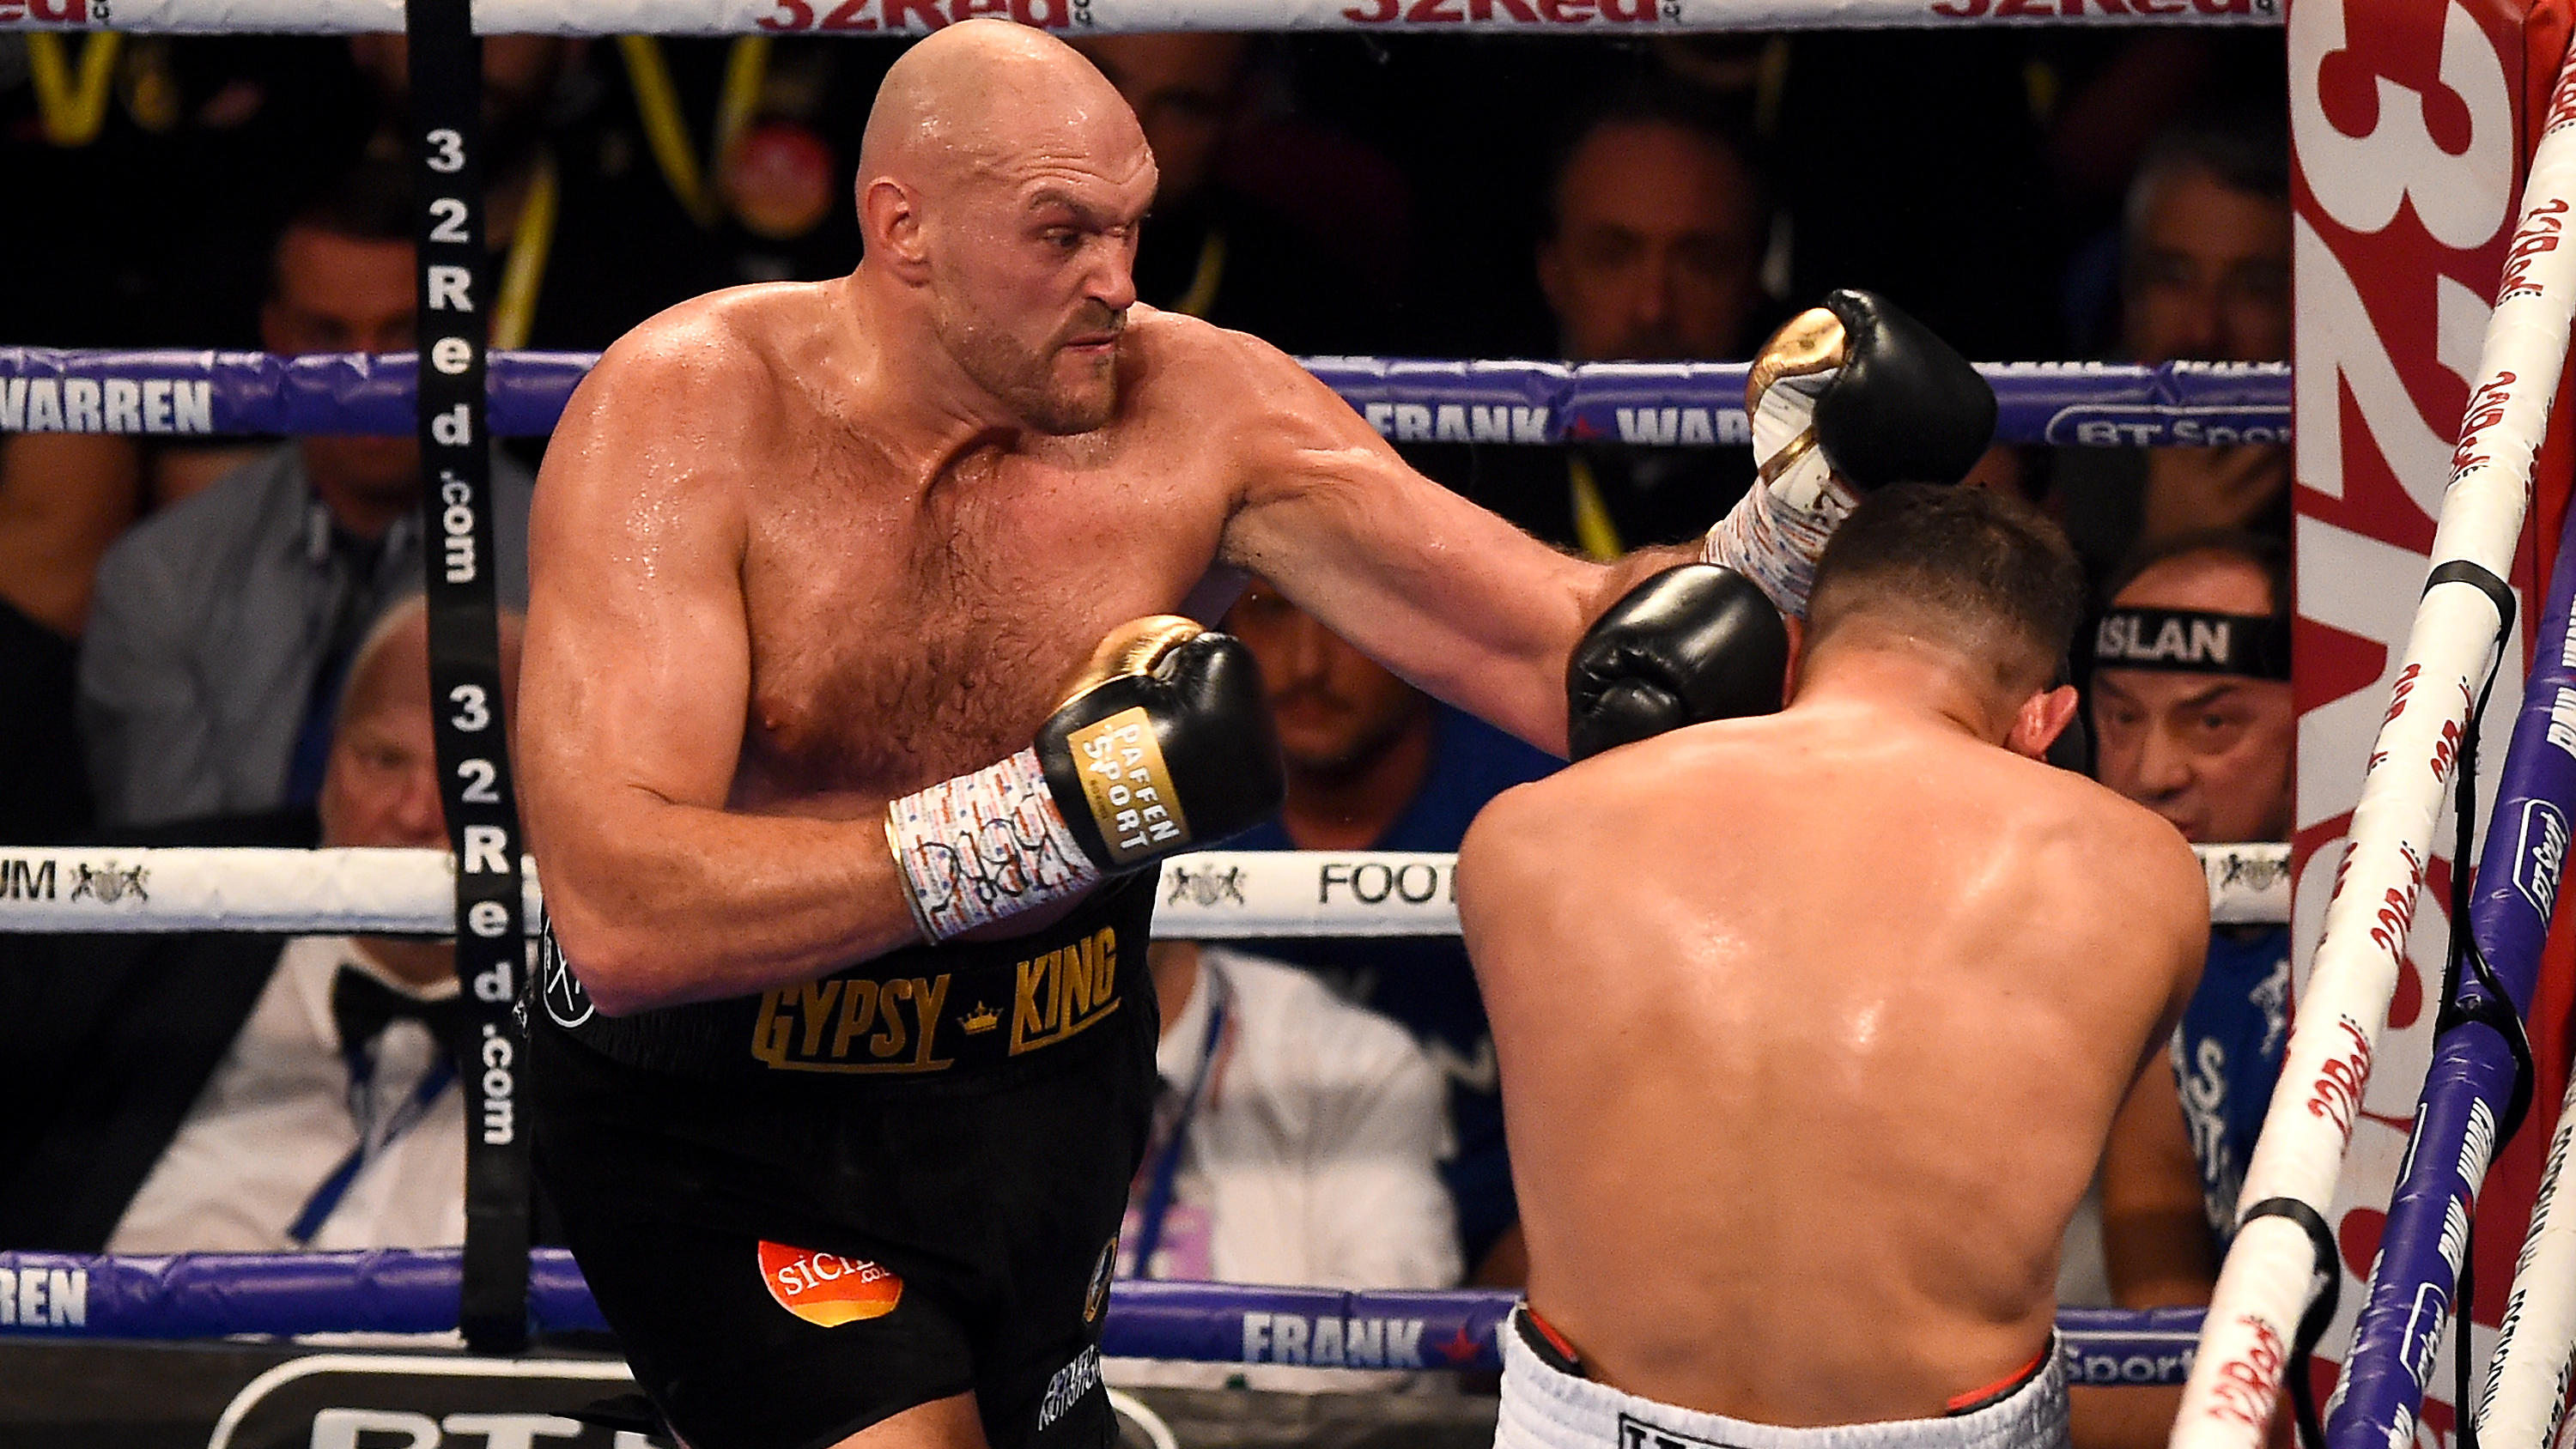 MANCHESTER, ENGLAND - JUNE 09:  Tyson Fury punches Sefer Seferi during there heavyweight contest at Manchester Arena on June 9, 2018 in Manchester, England.  (Photo by Nathan Stirk/Getty Images)